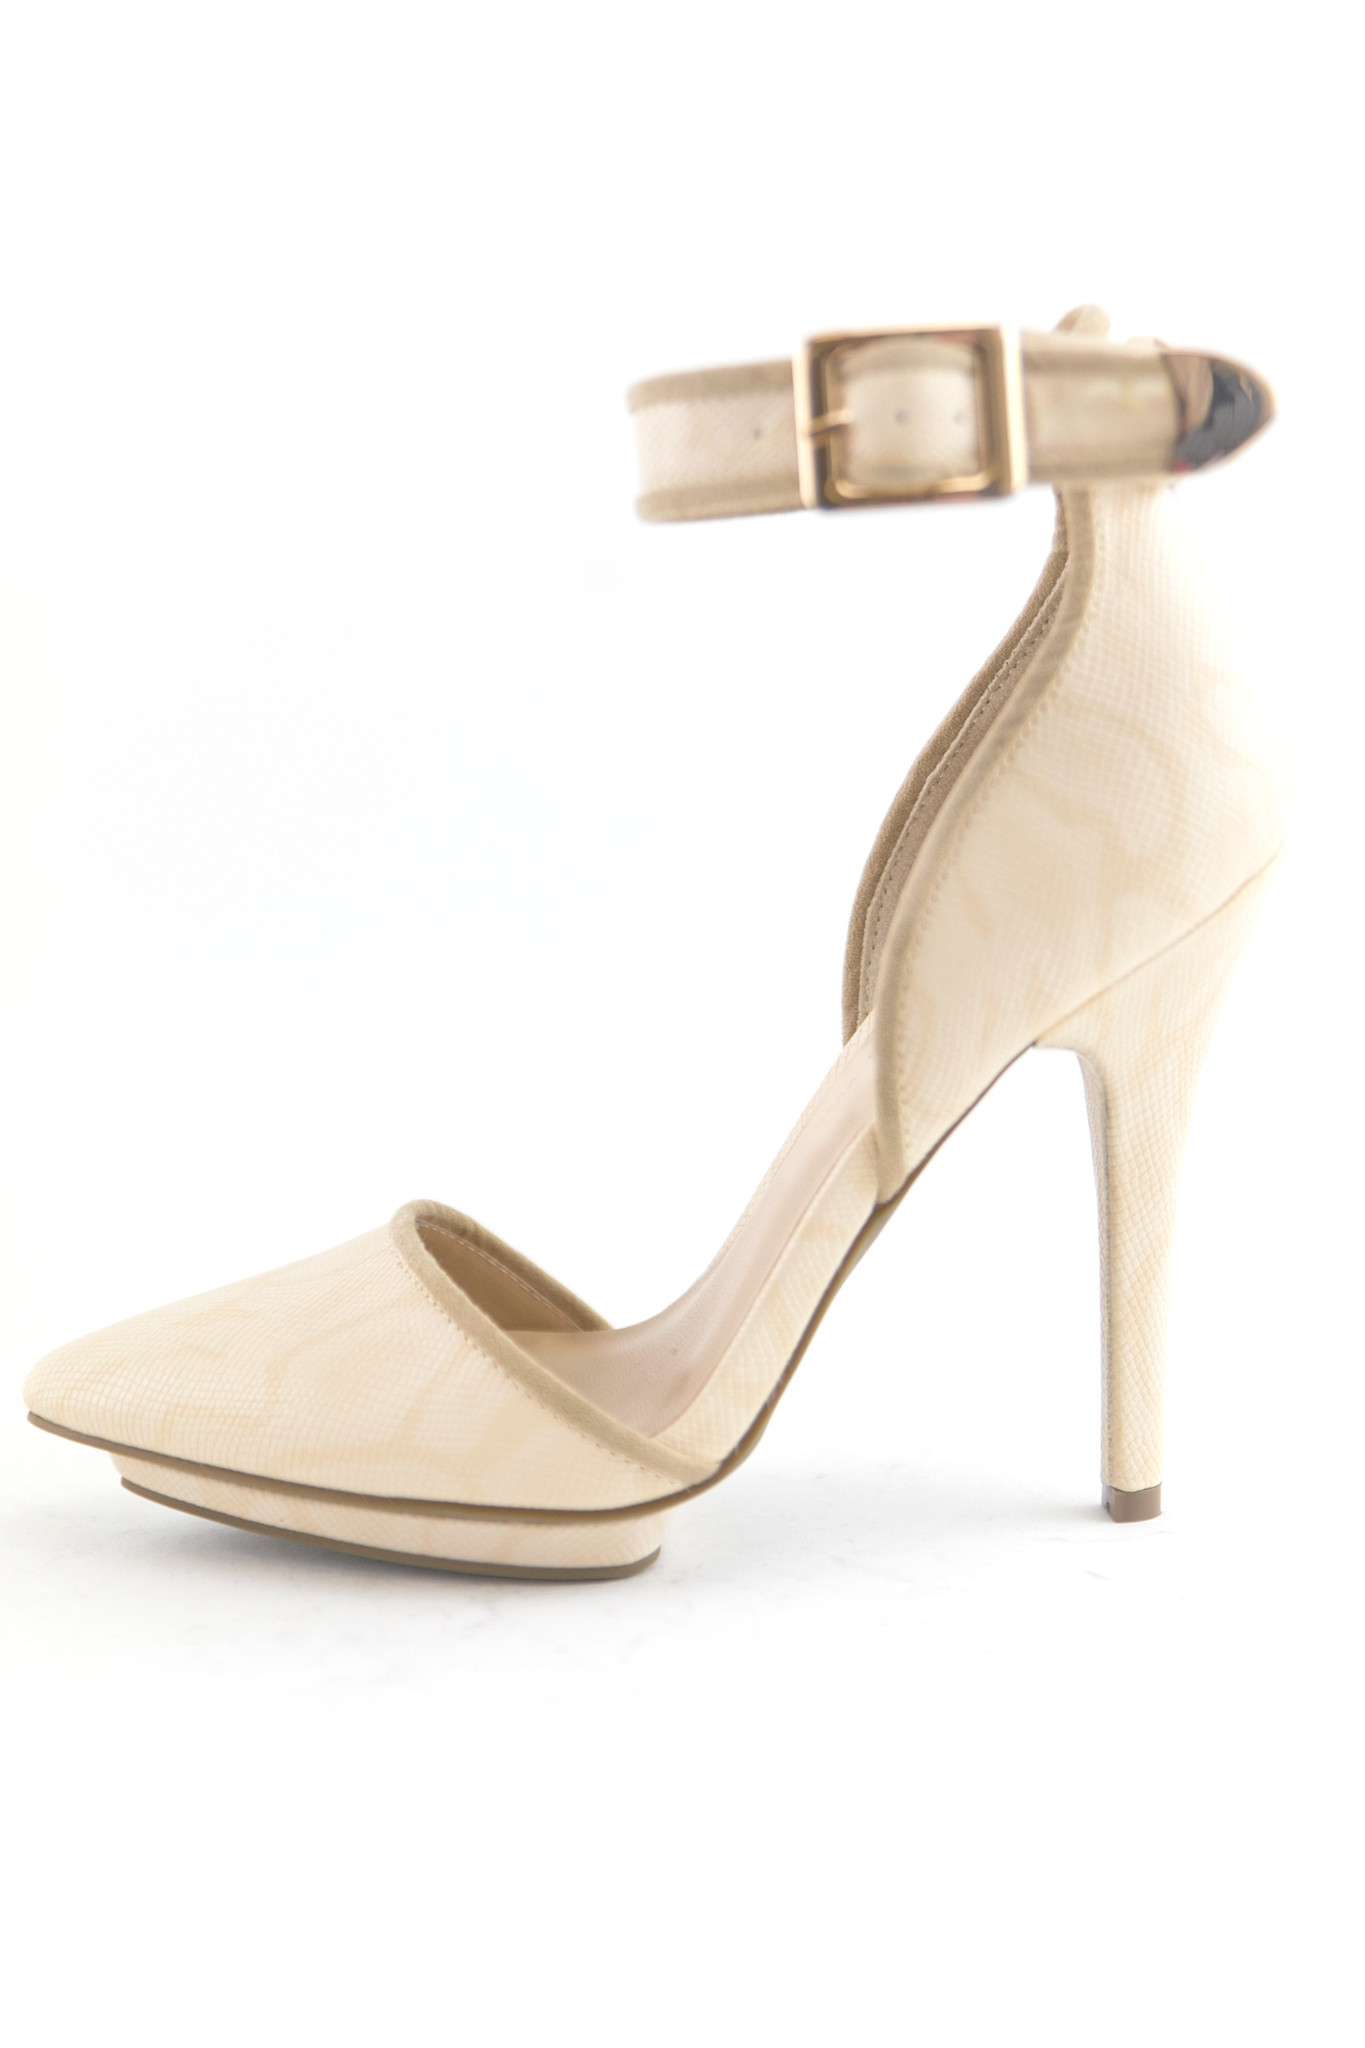 JANE ANKLE STRAP PUMP - NATURAL | Haute & Rebellious